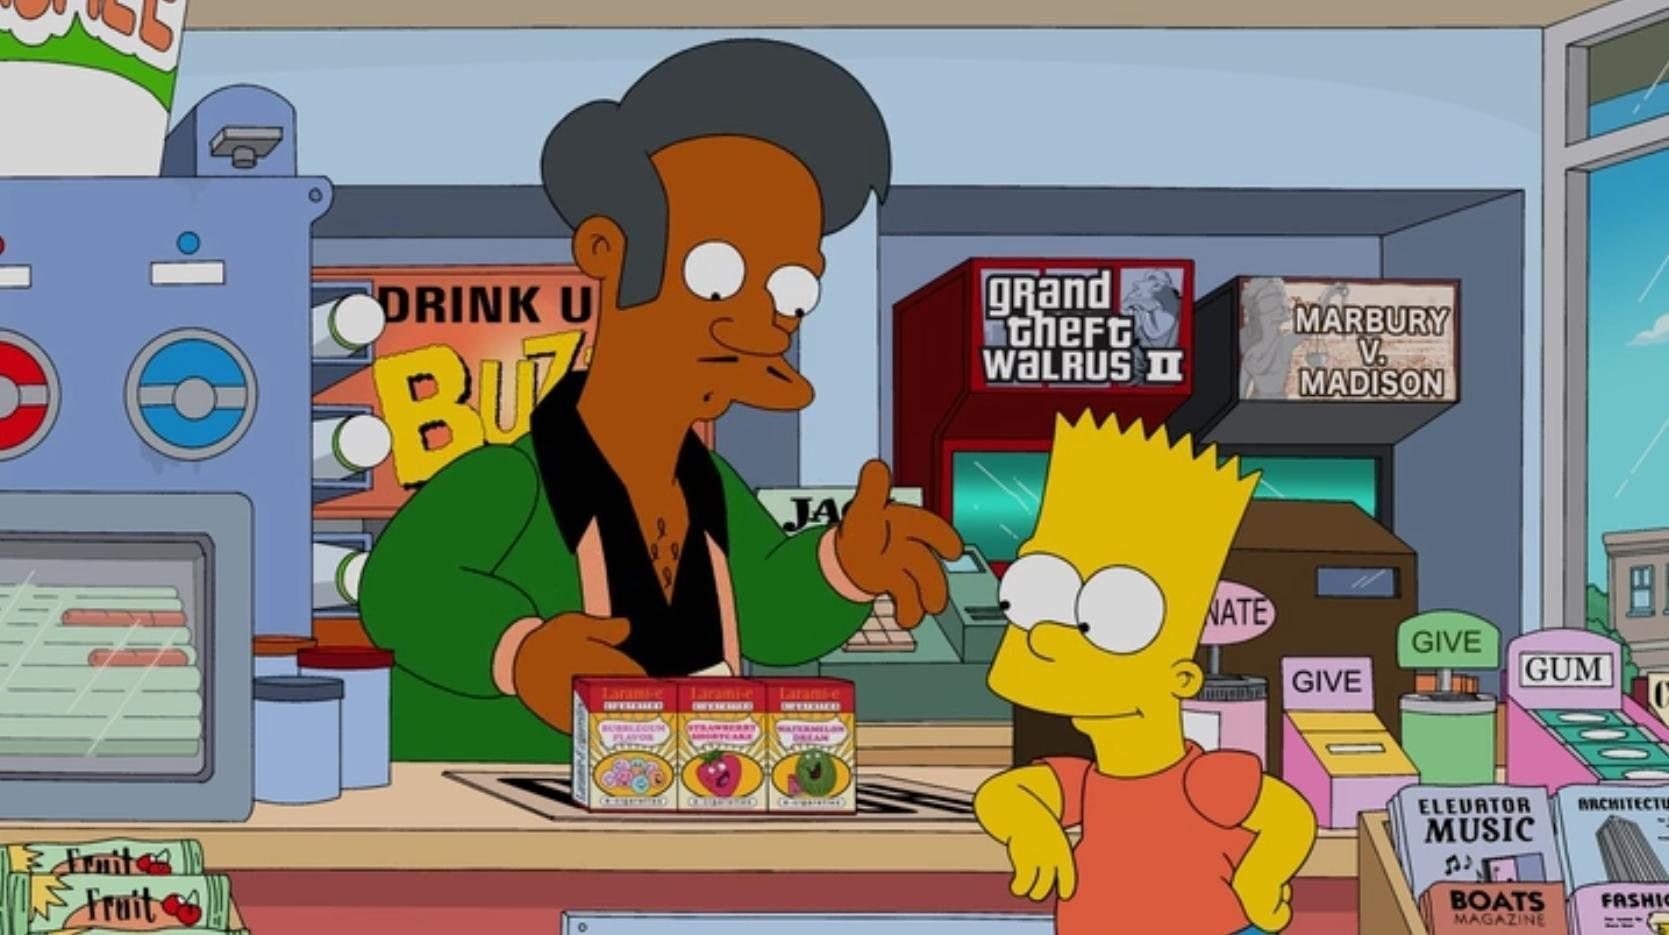 'The Simpsons': Apu Voice Actor Hank Azaria Responds To Claim The Character Promotes Racial